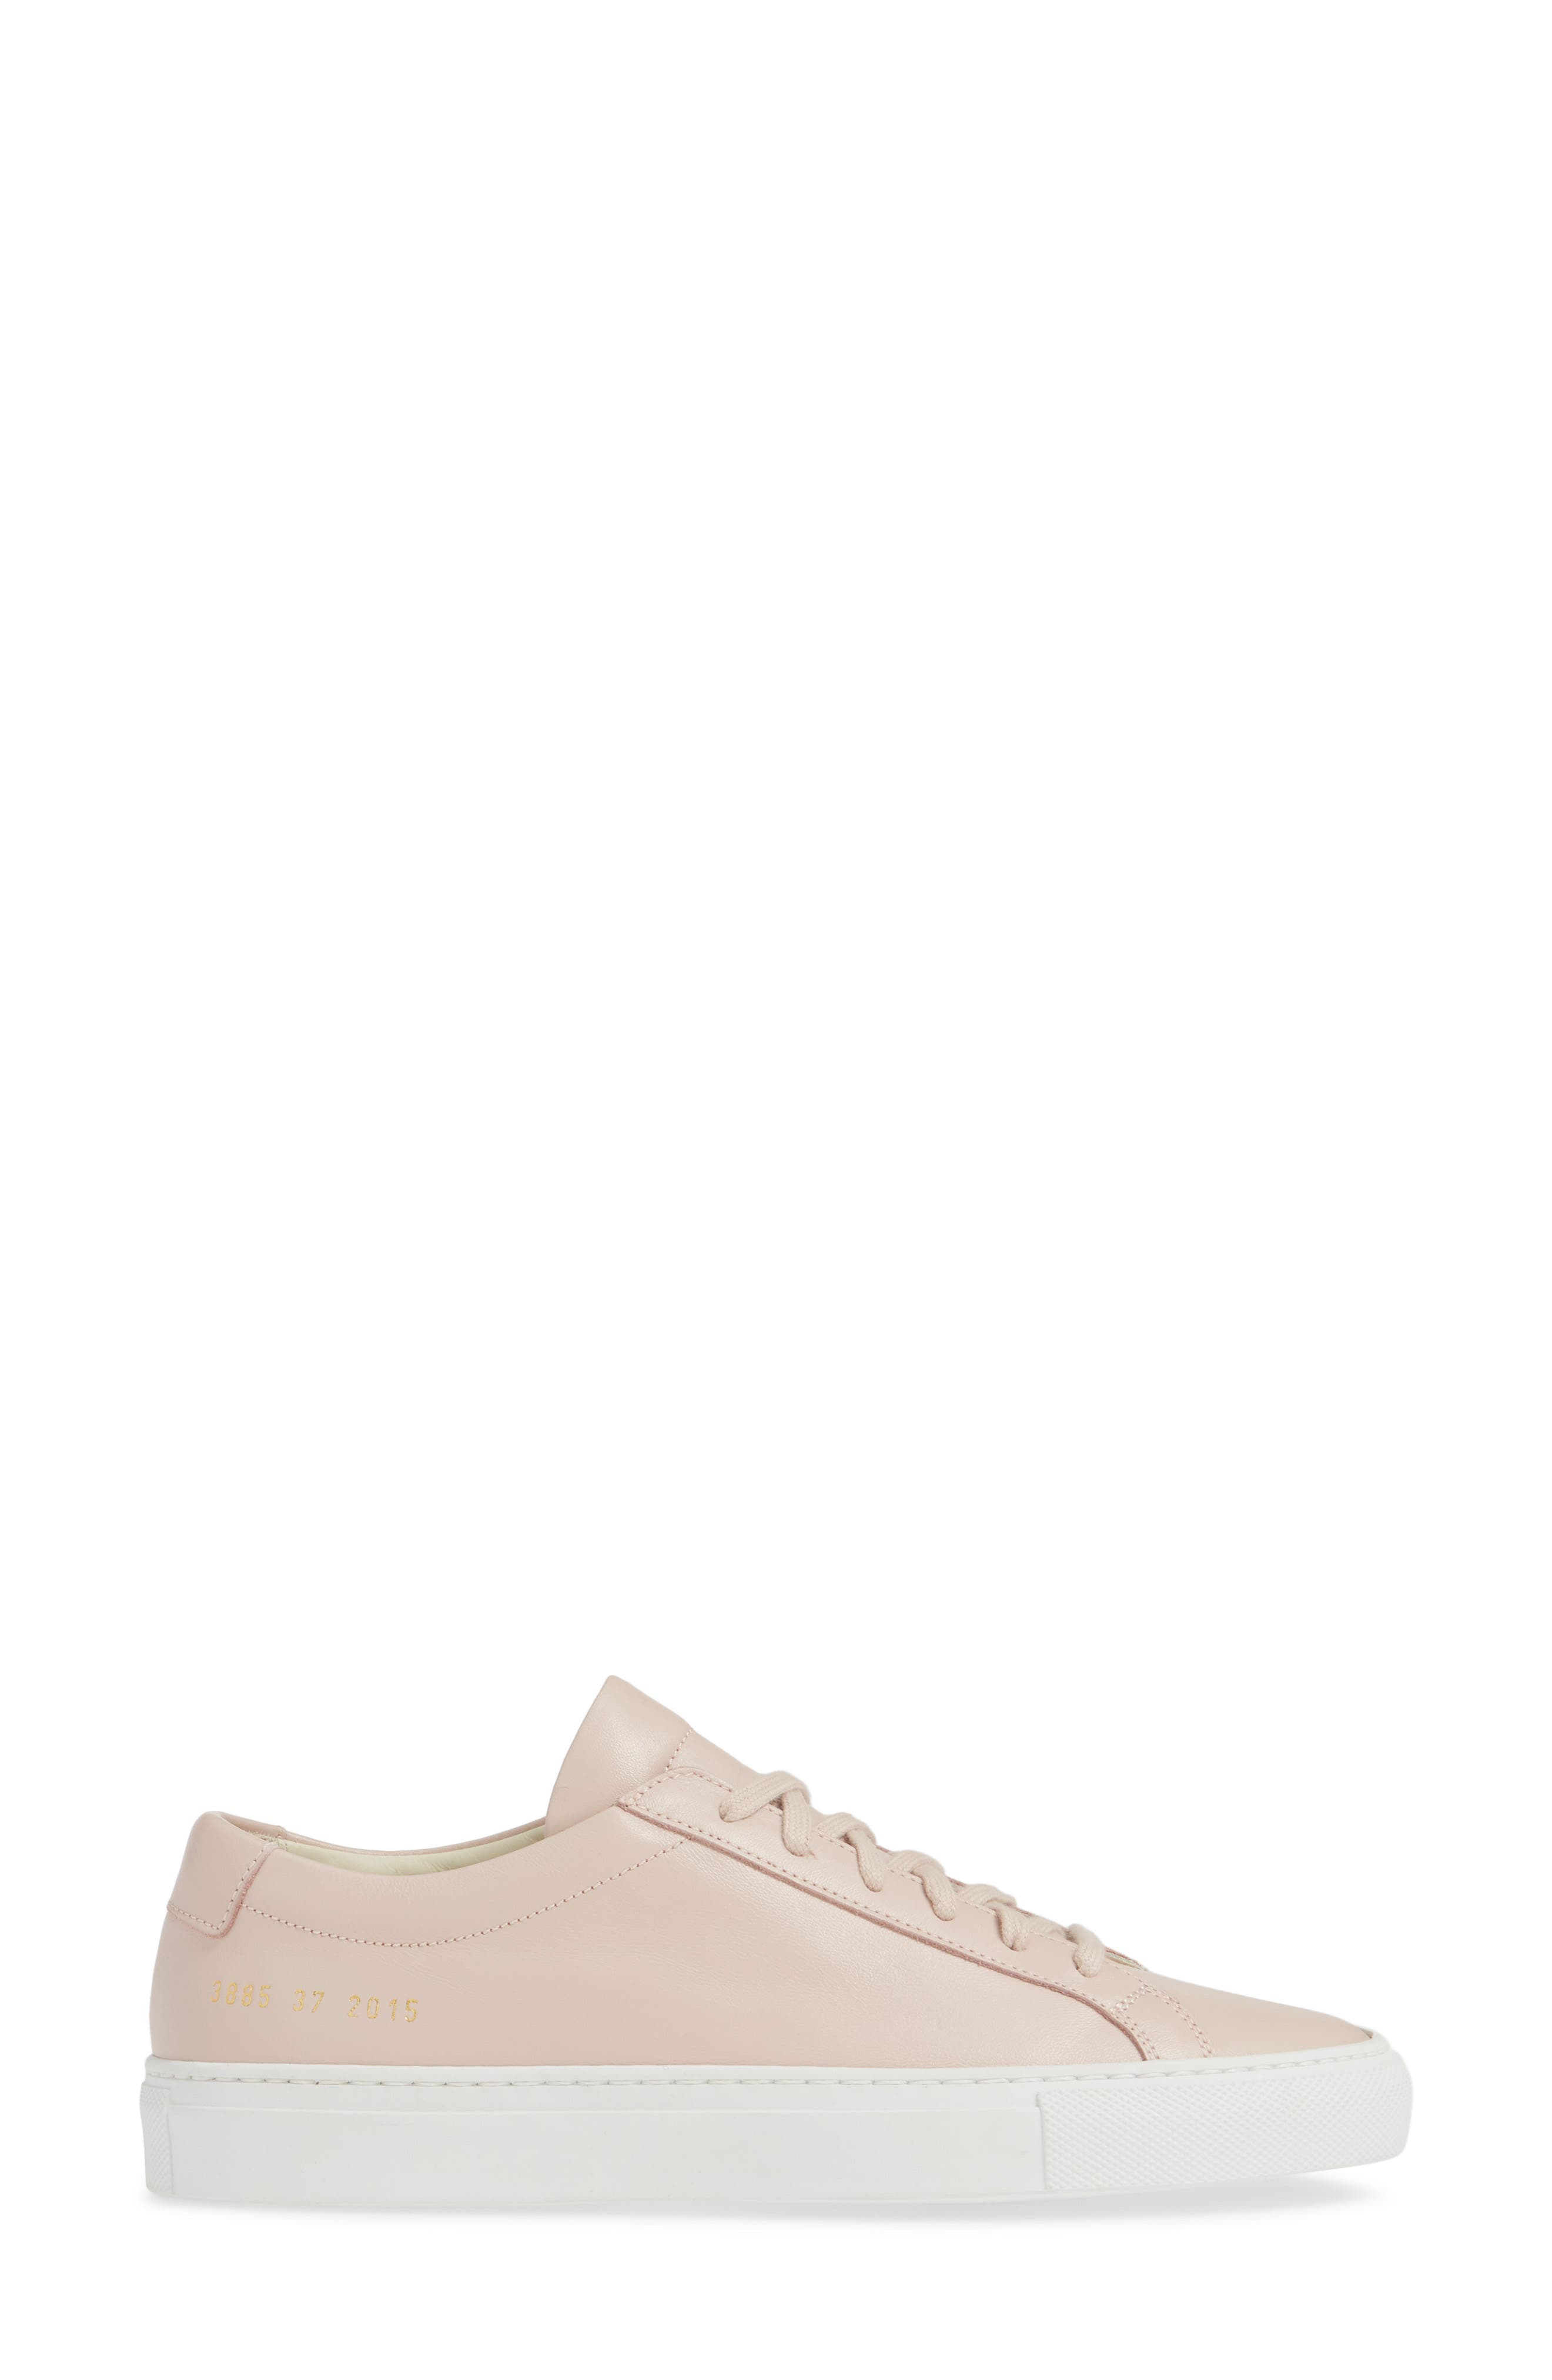 COMMON PROJECTS,                             Original Achilles Sneaker,                             Alternate thumbnail 3, color,                             BLUSH